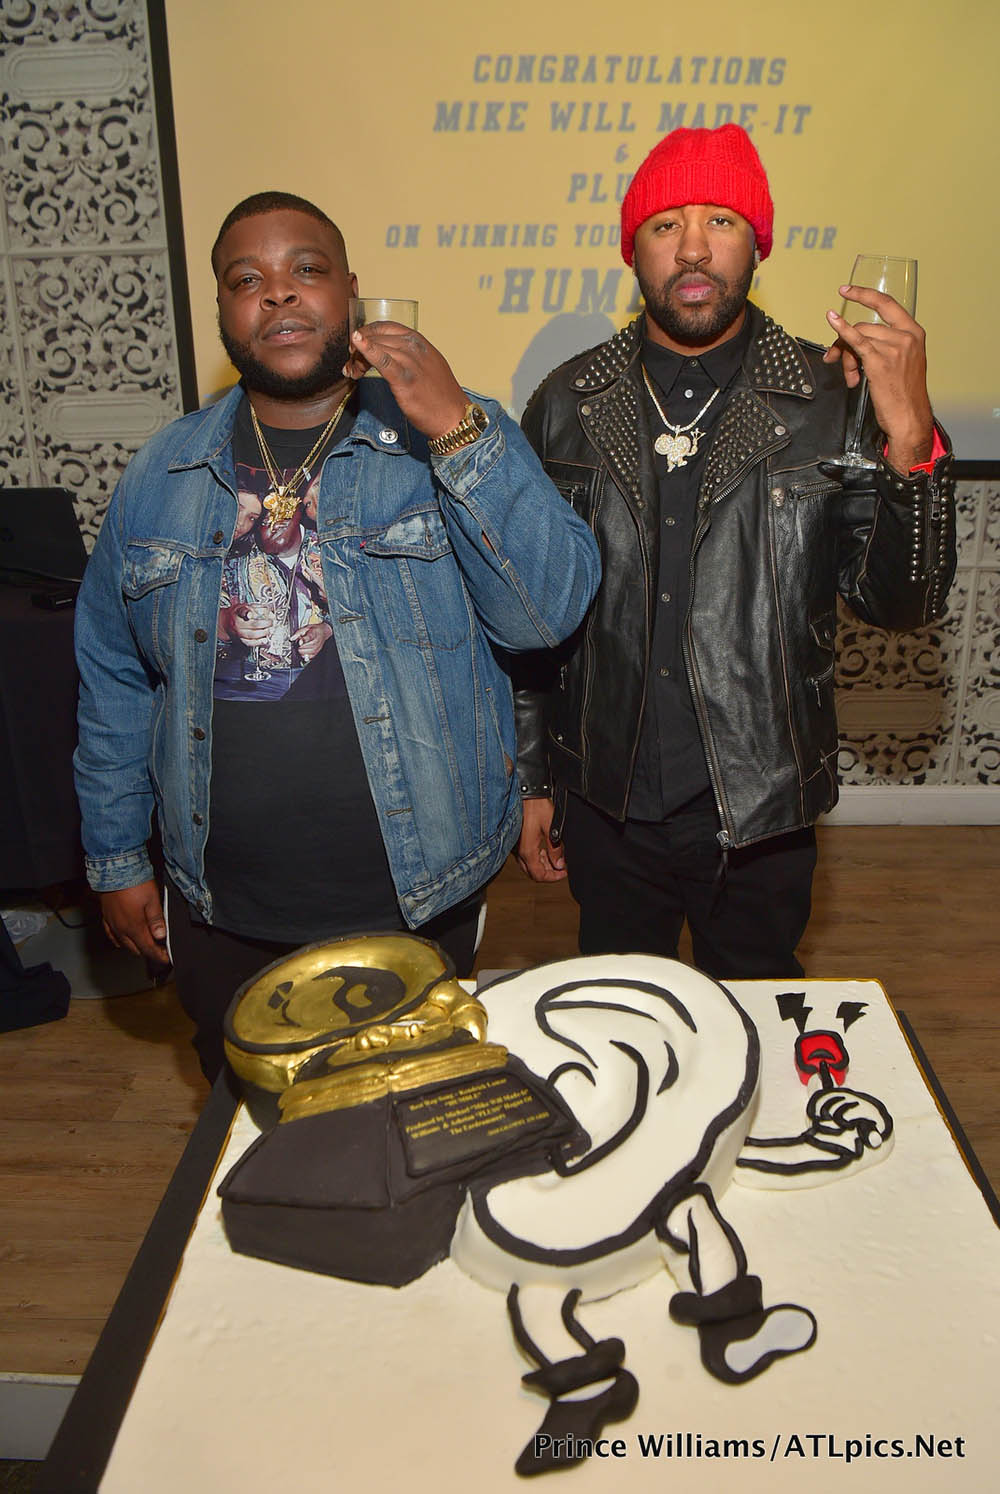 Mike Will Made It (R) & PLUSS (L) at their Grammy Celebration